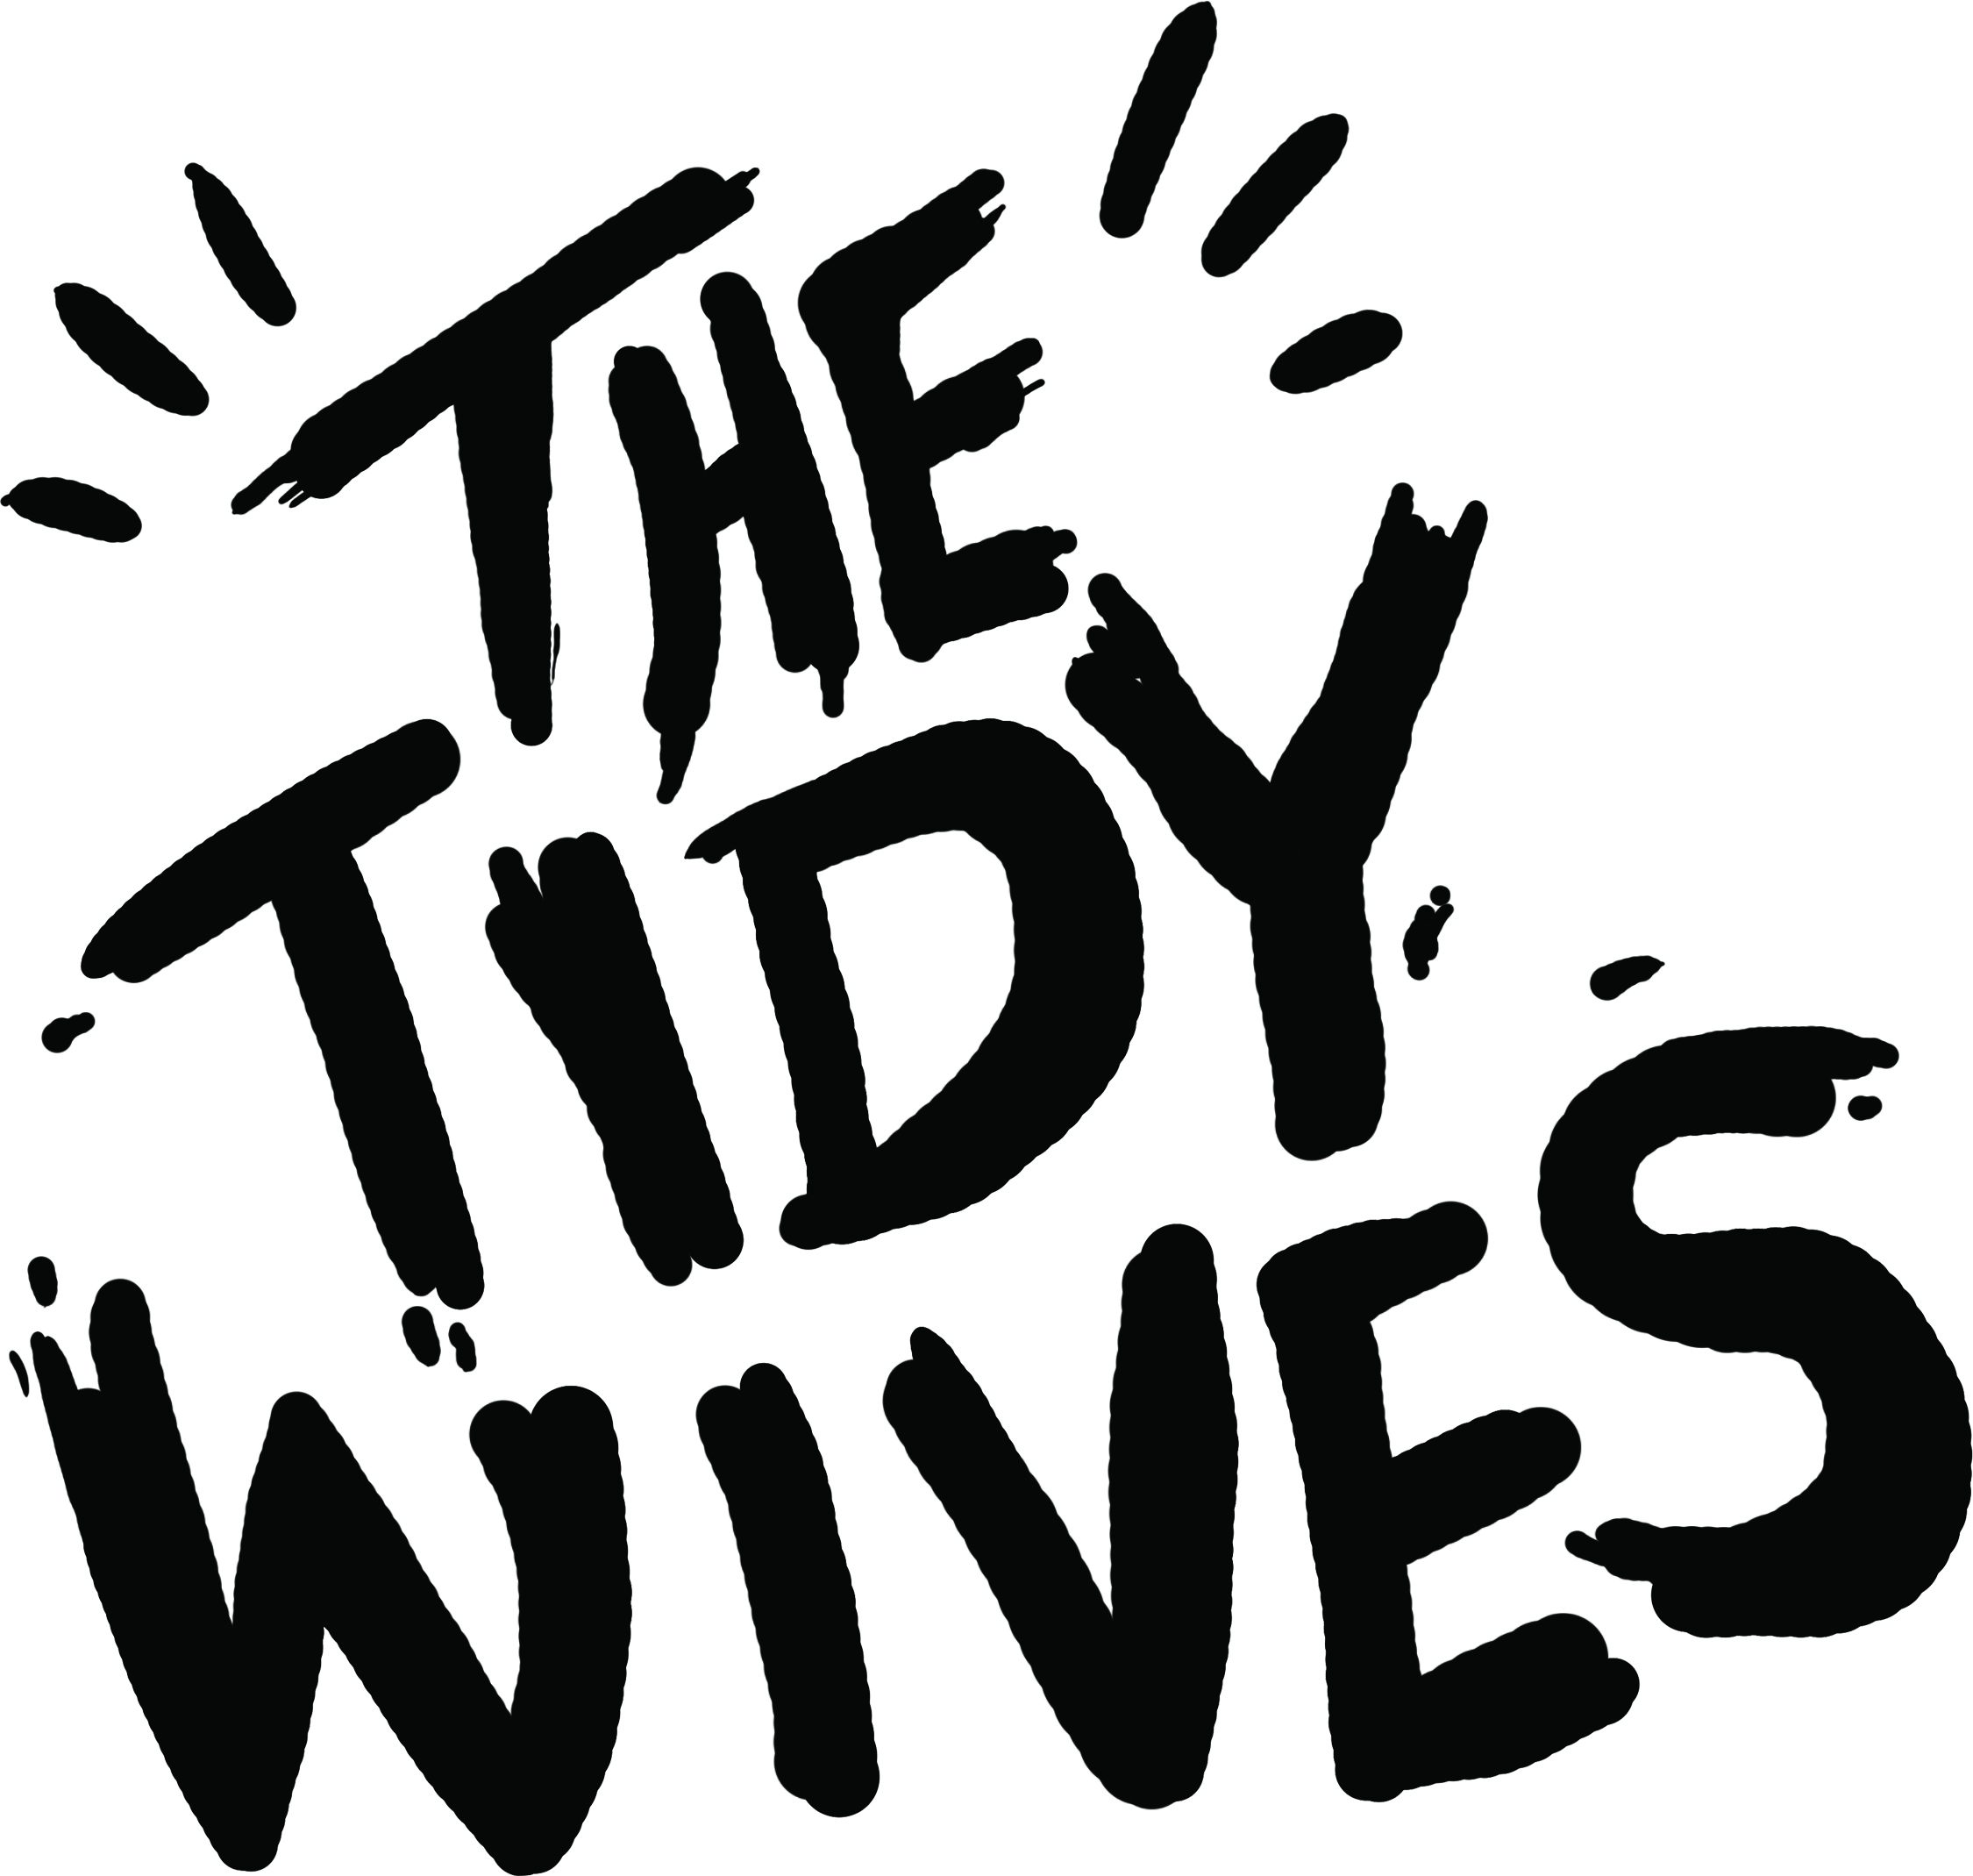 The Tidy Wives Logo design